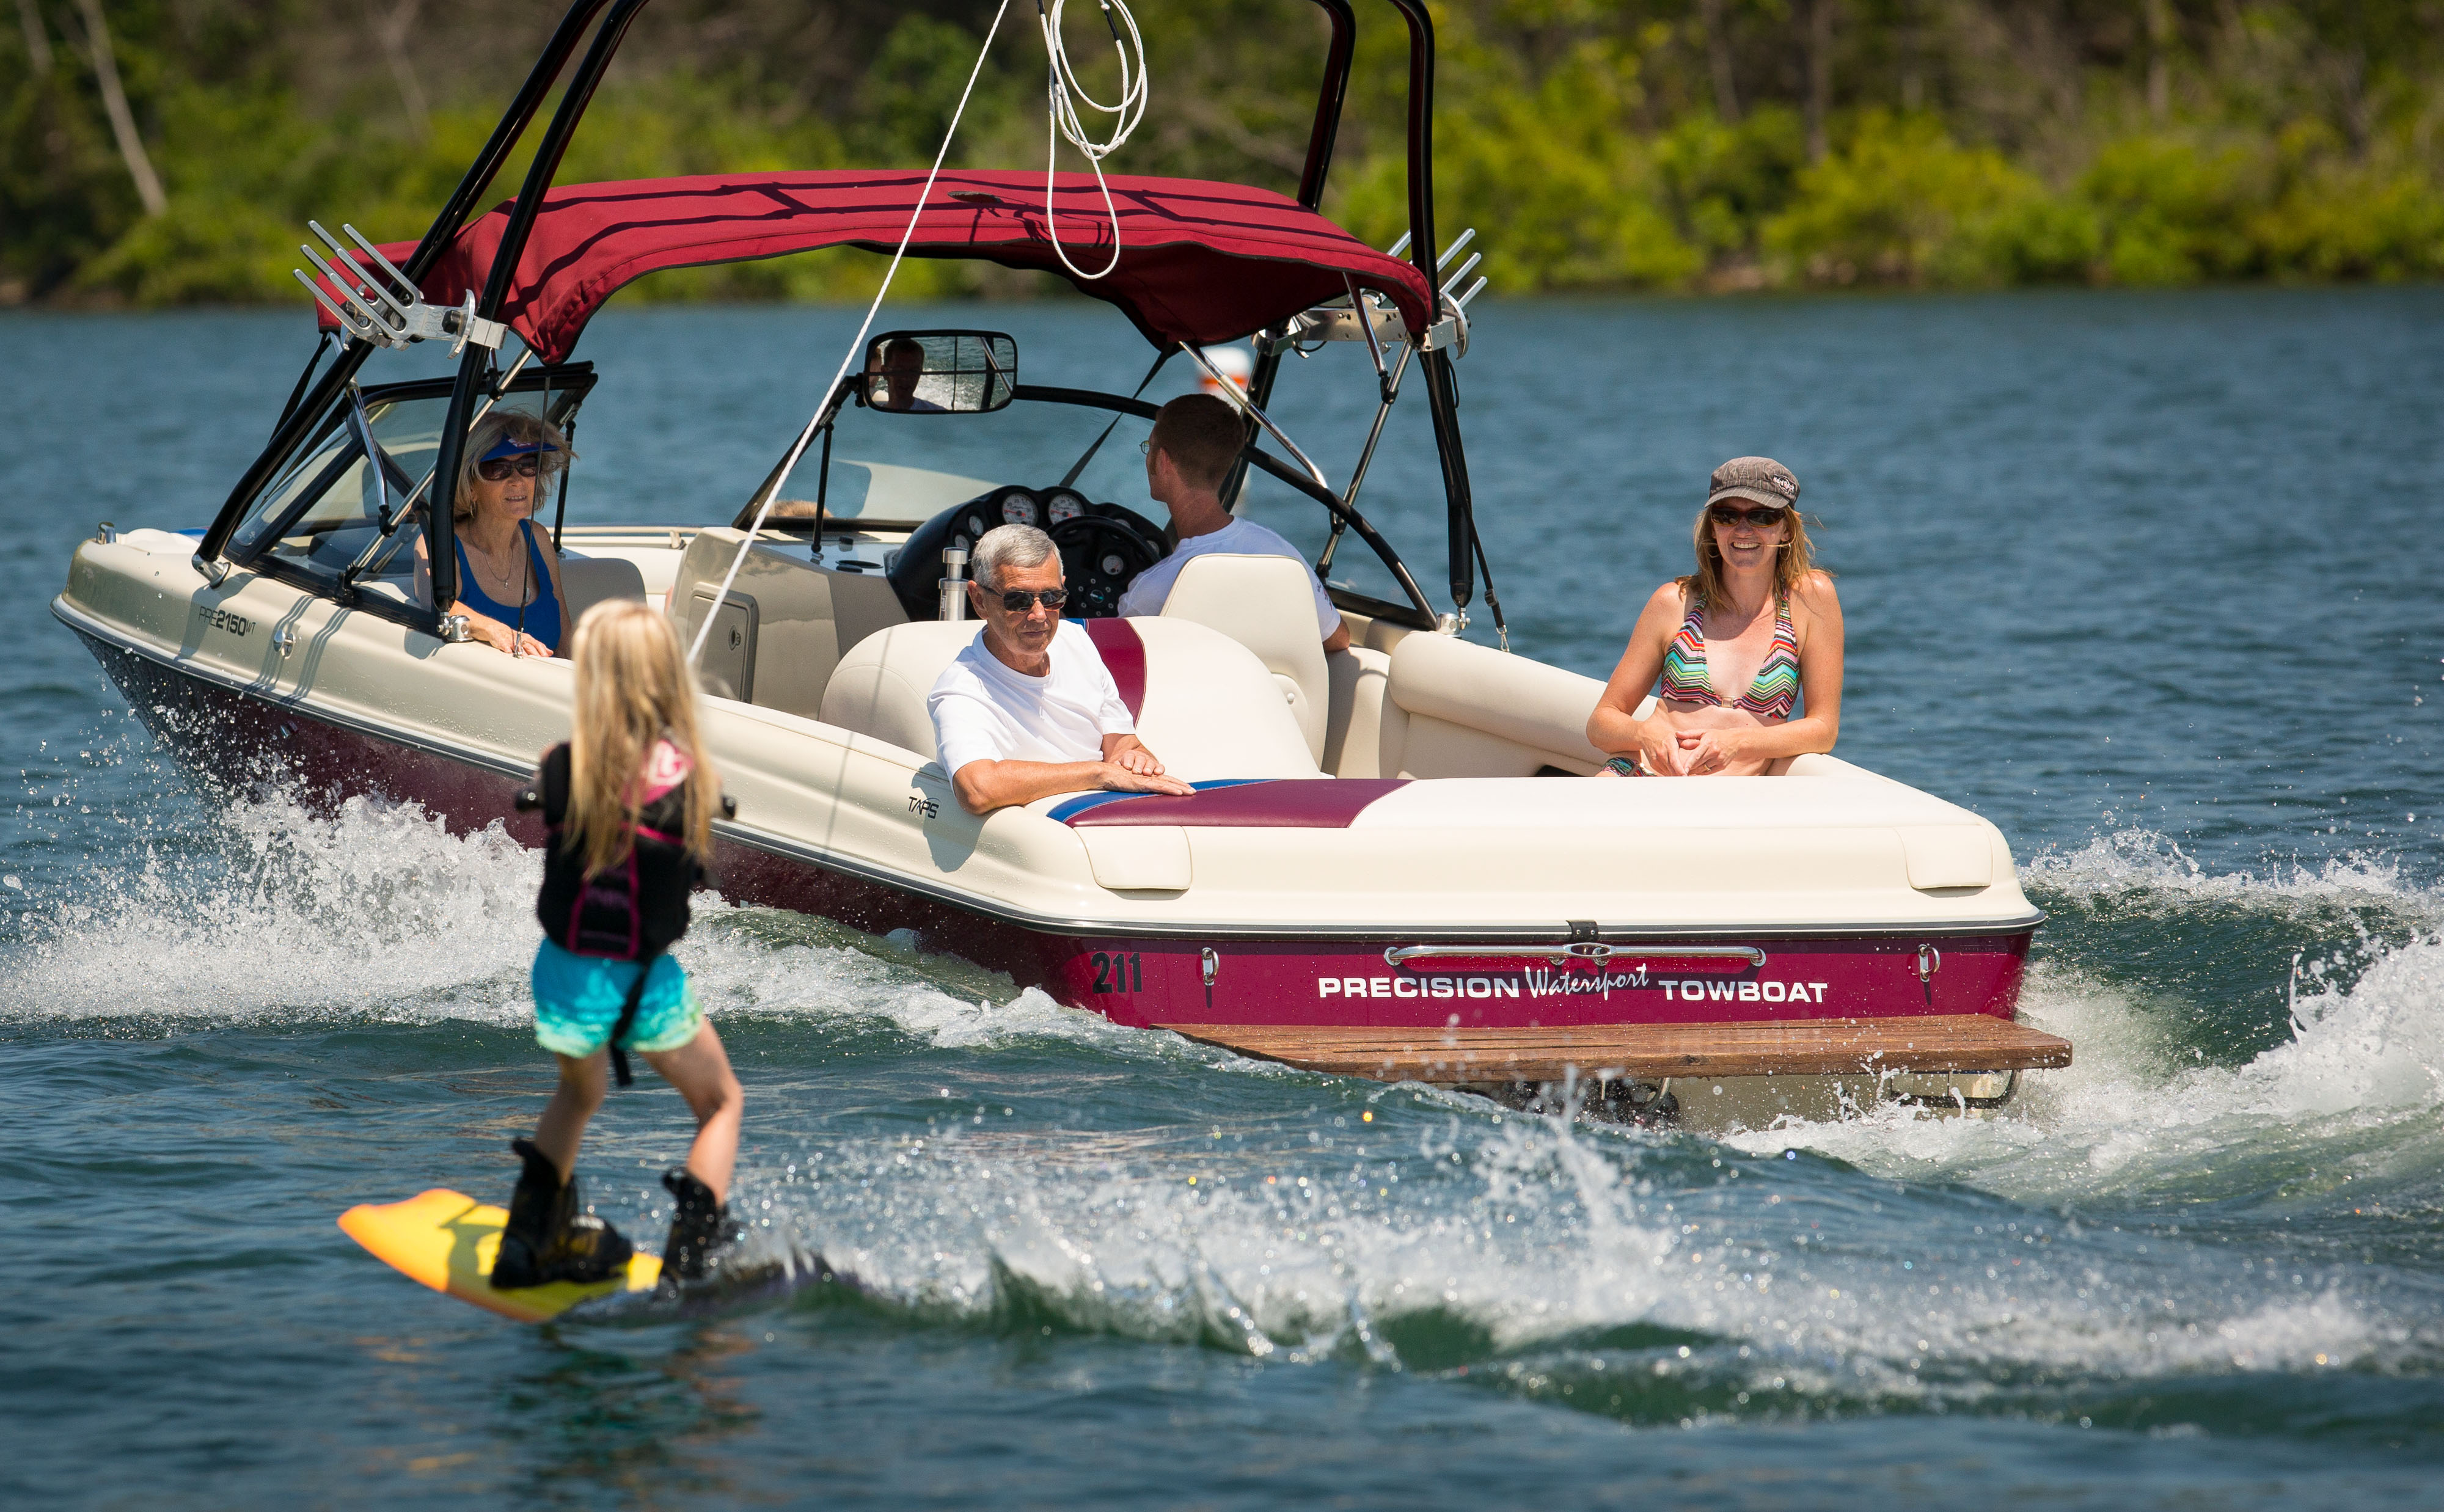 Dad Loves A Trip To The Lake With His Family. With Fatheru0027s Day Just Days  Away, We Thought We Might Suggest A Few Great Ways To Treat Dad At Table  Rock Lake ...